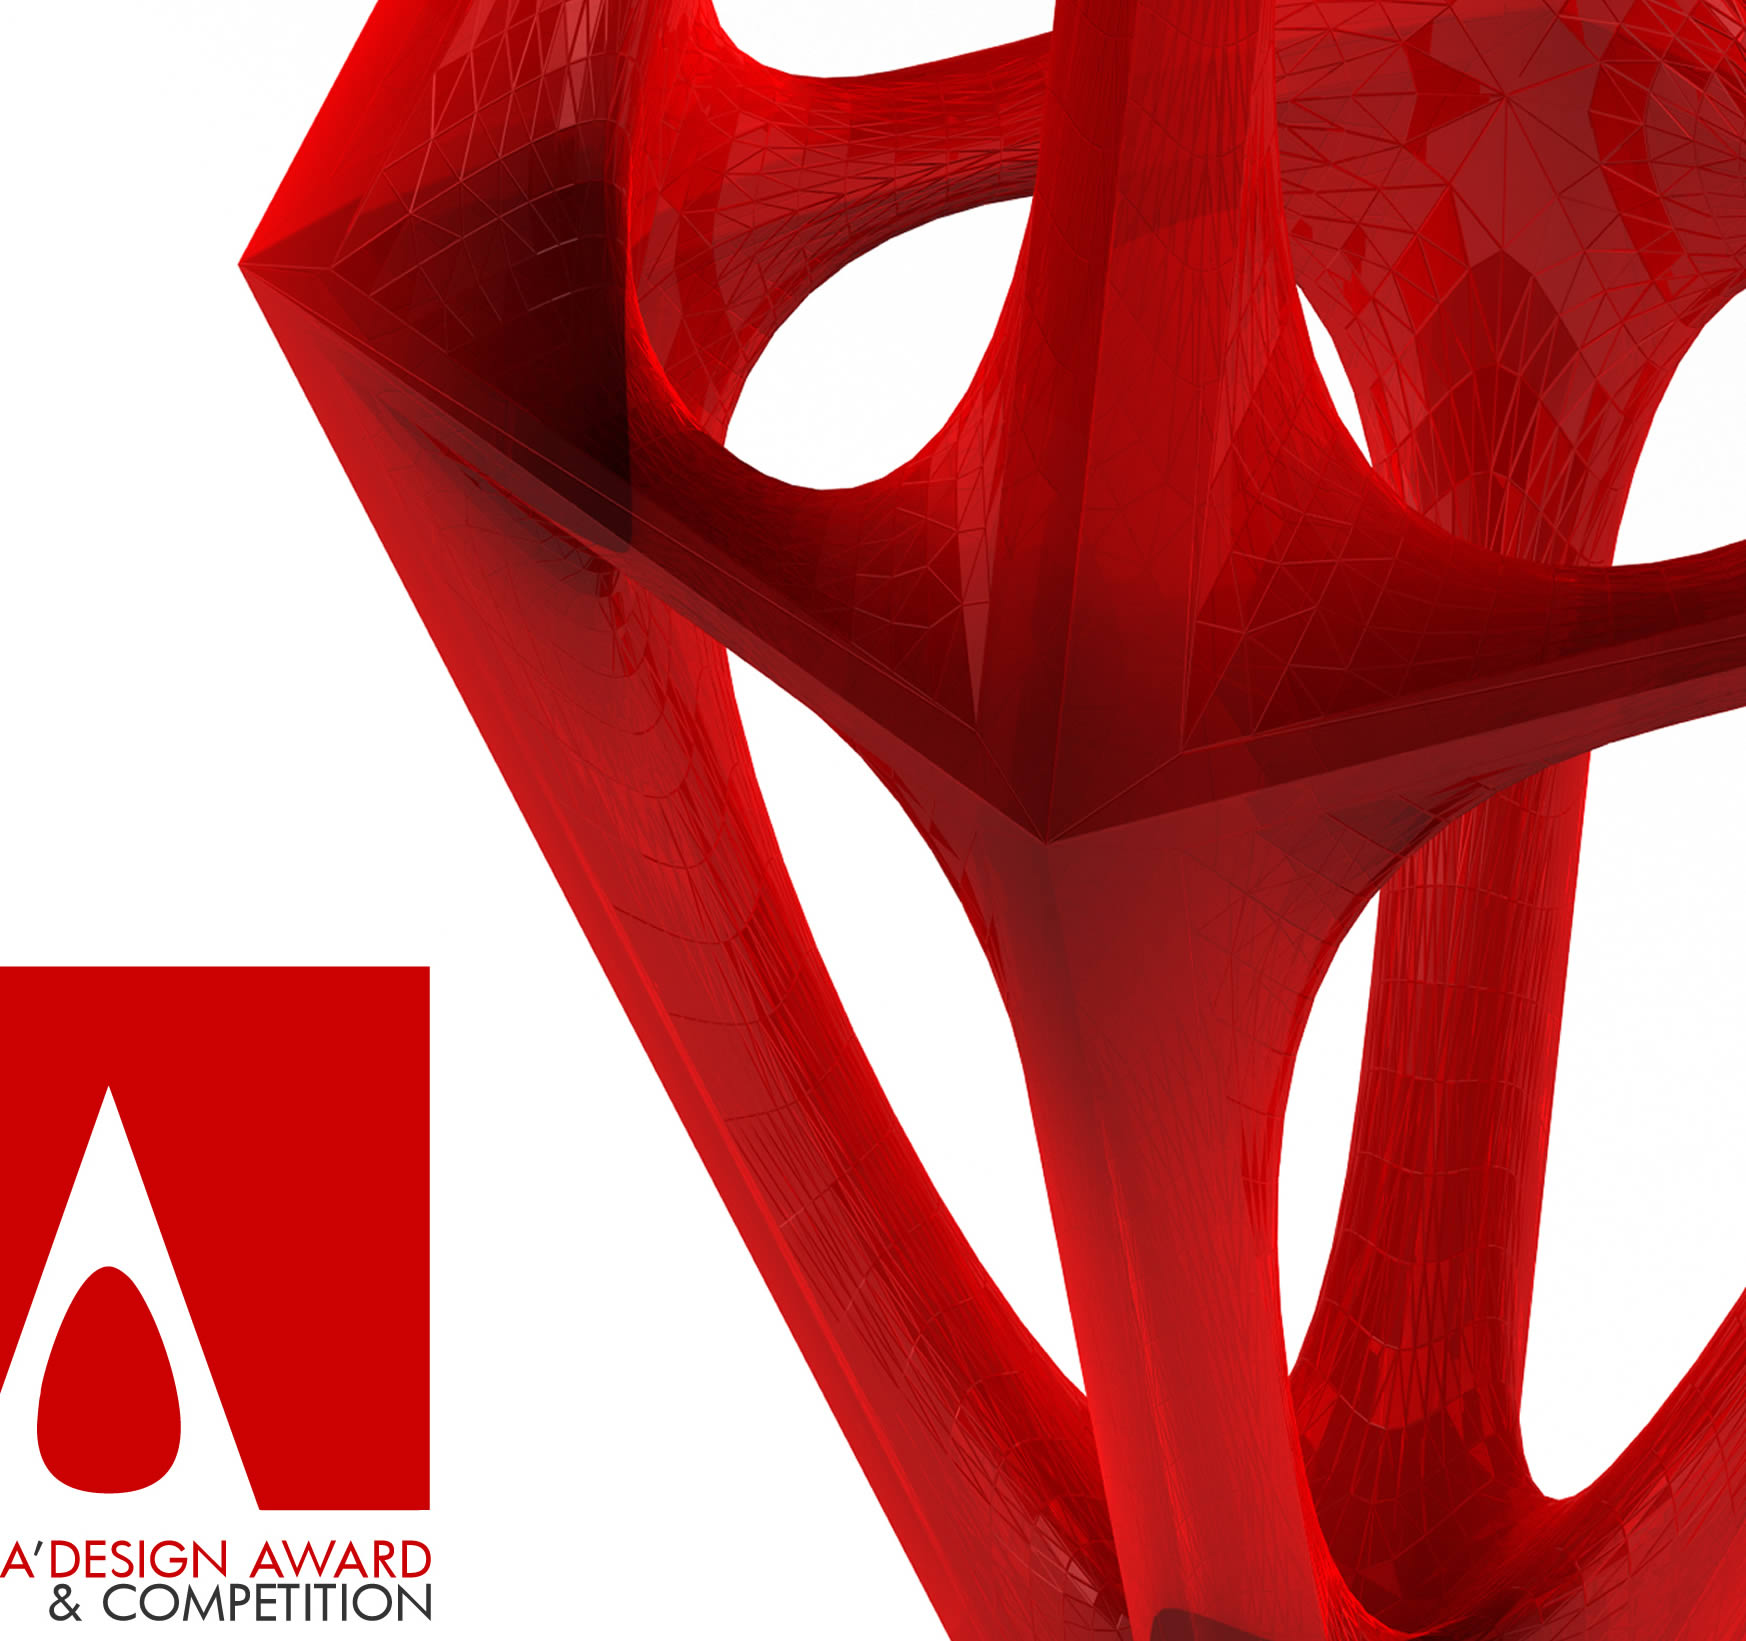 a'design award in red with logo on left side